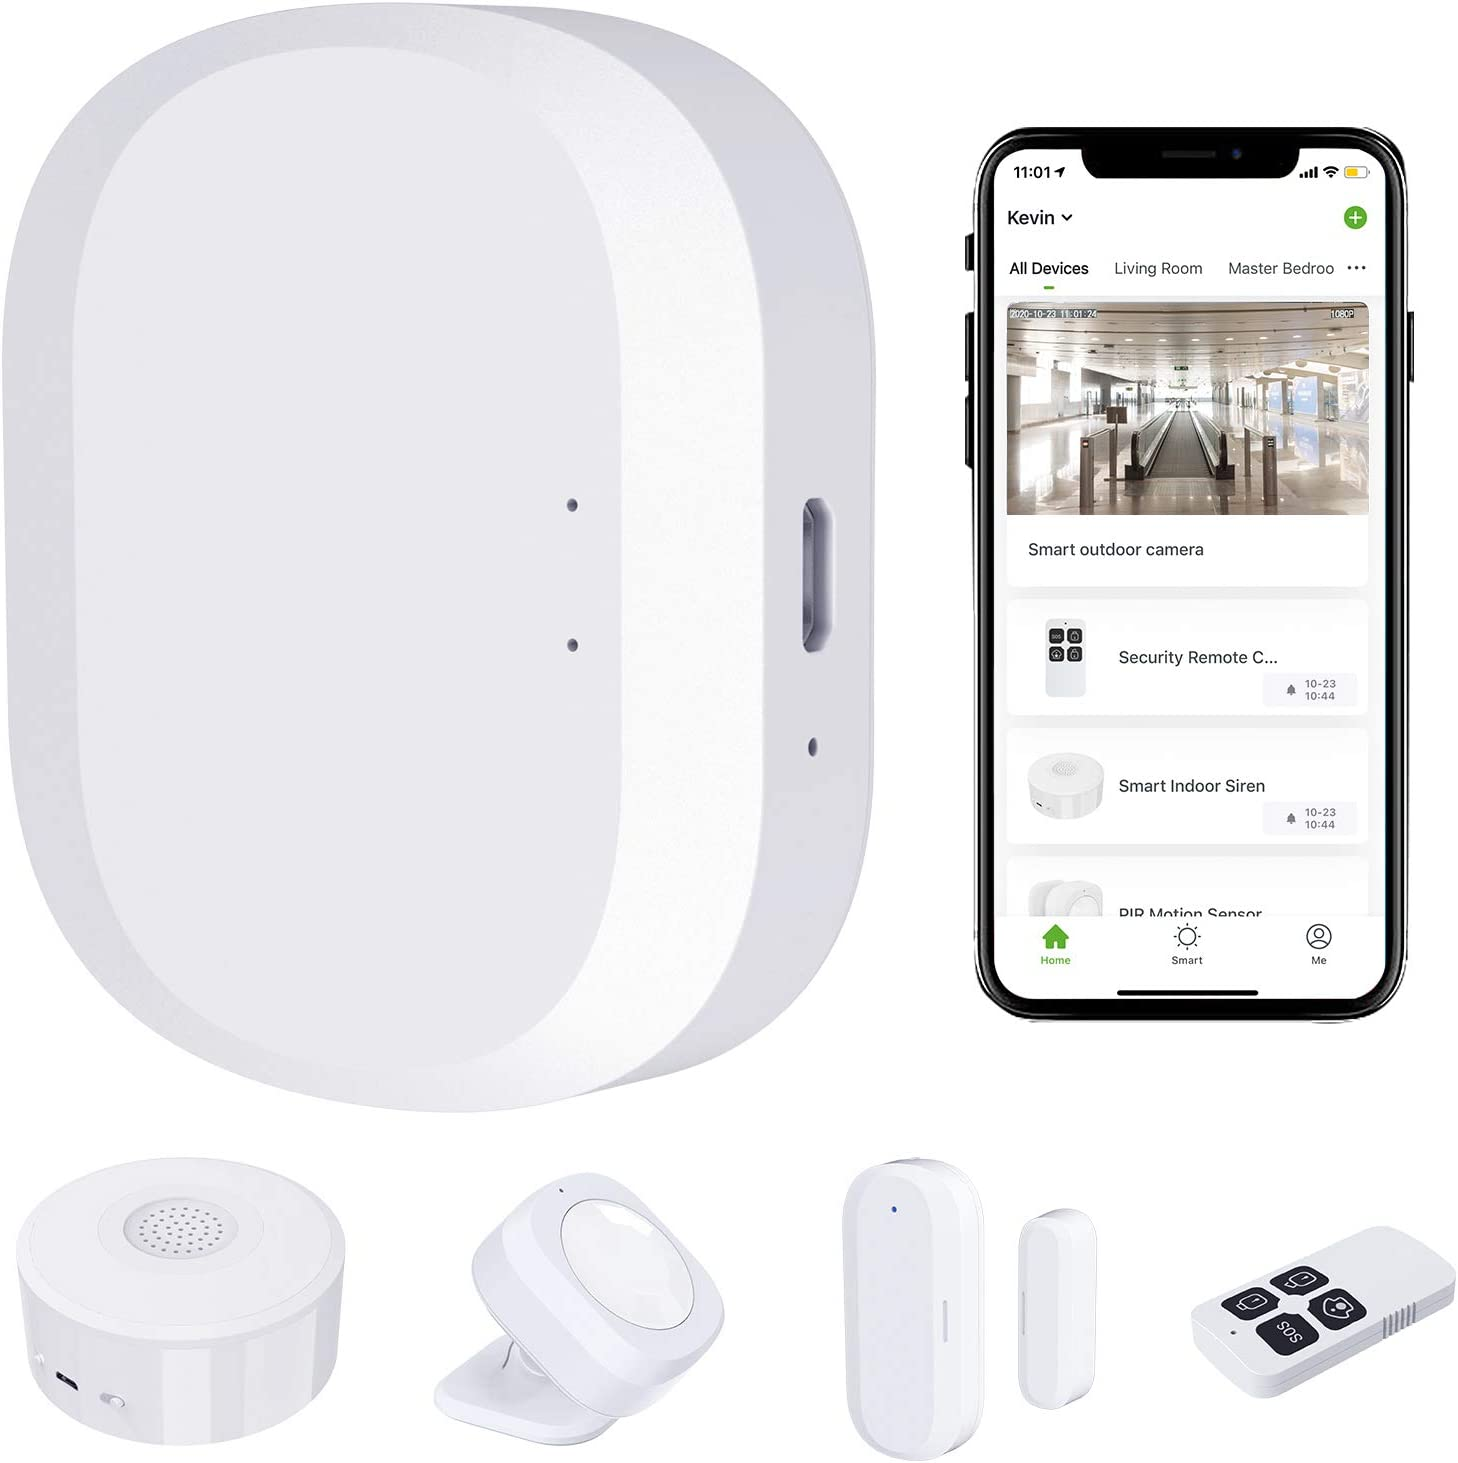 JLAZGJ 5 Pieces Wireless Home Security System,WiFi Alarm Home Security kit - 24/7 Professional Home Safeguard (5 Pieces)